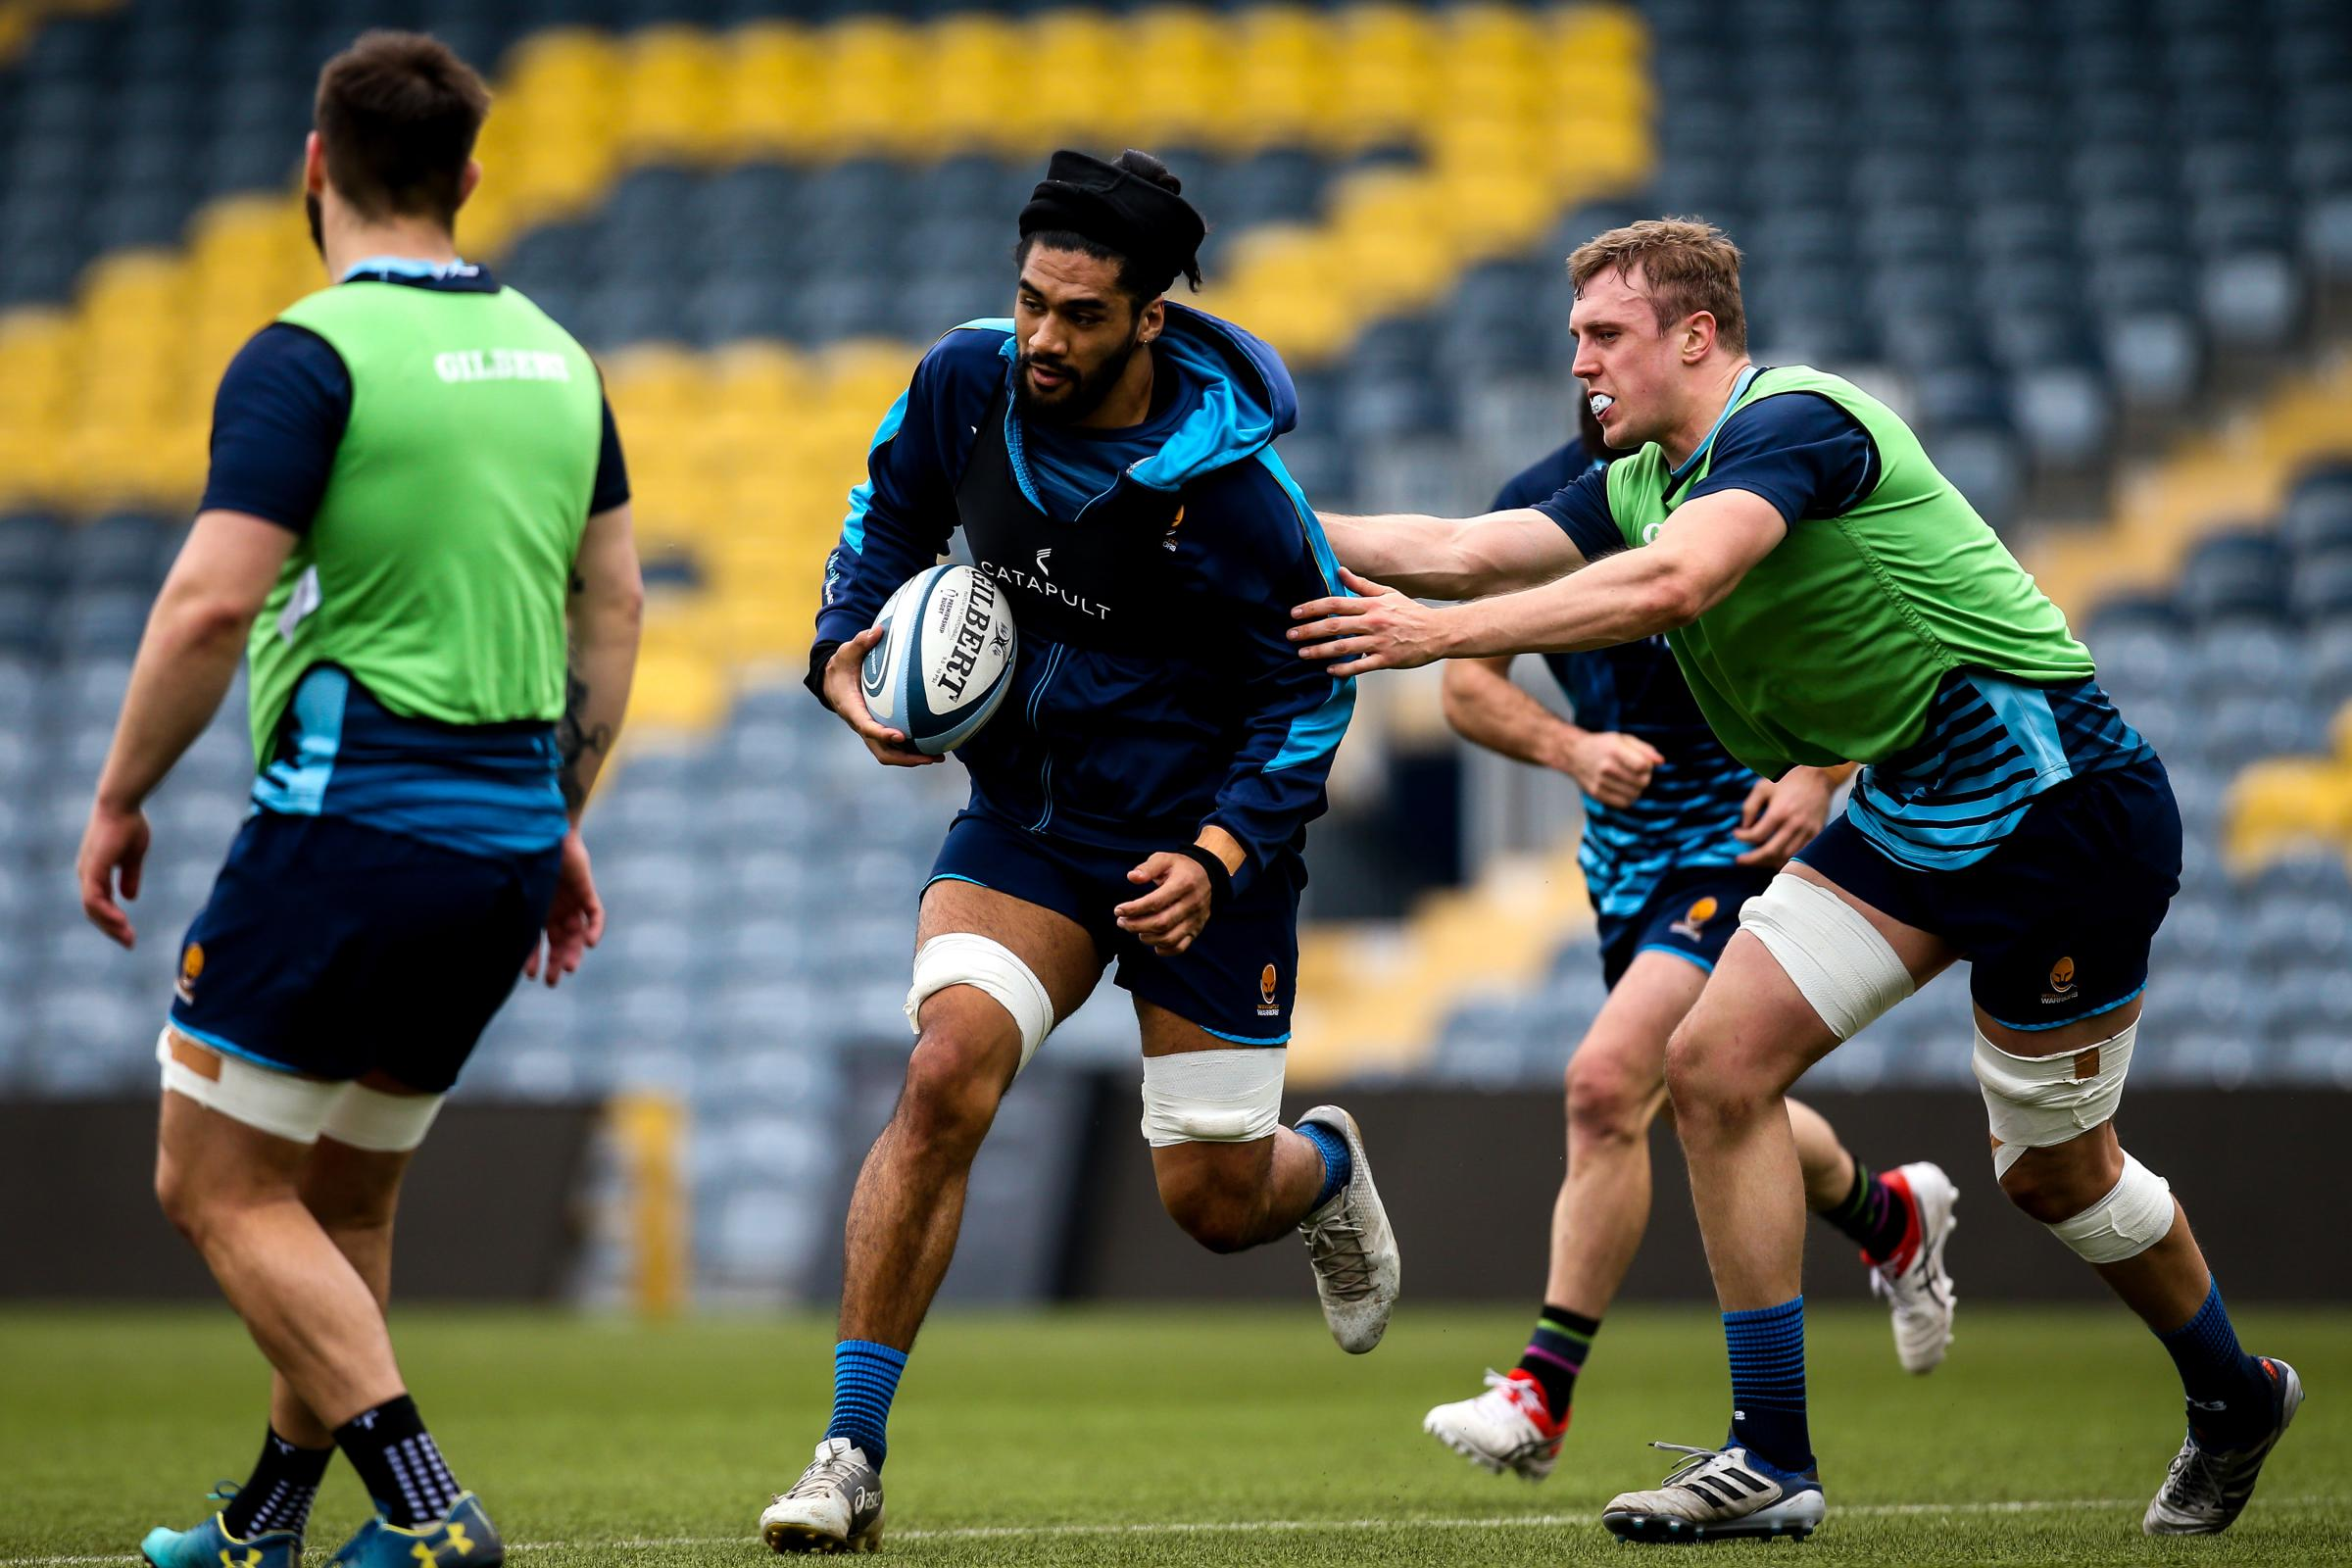 Michael Fatialofa and Pierce Phillips in training. Picture: Robbie Stephenson/JMP